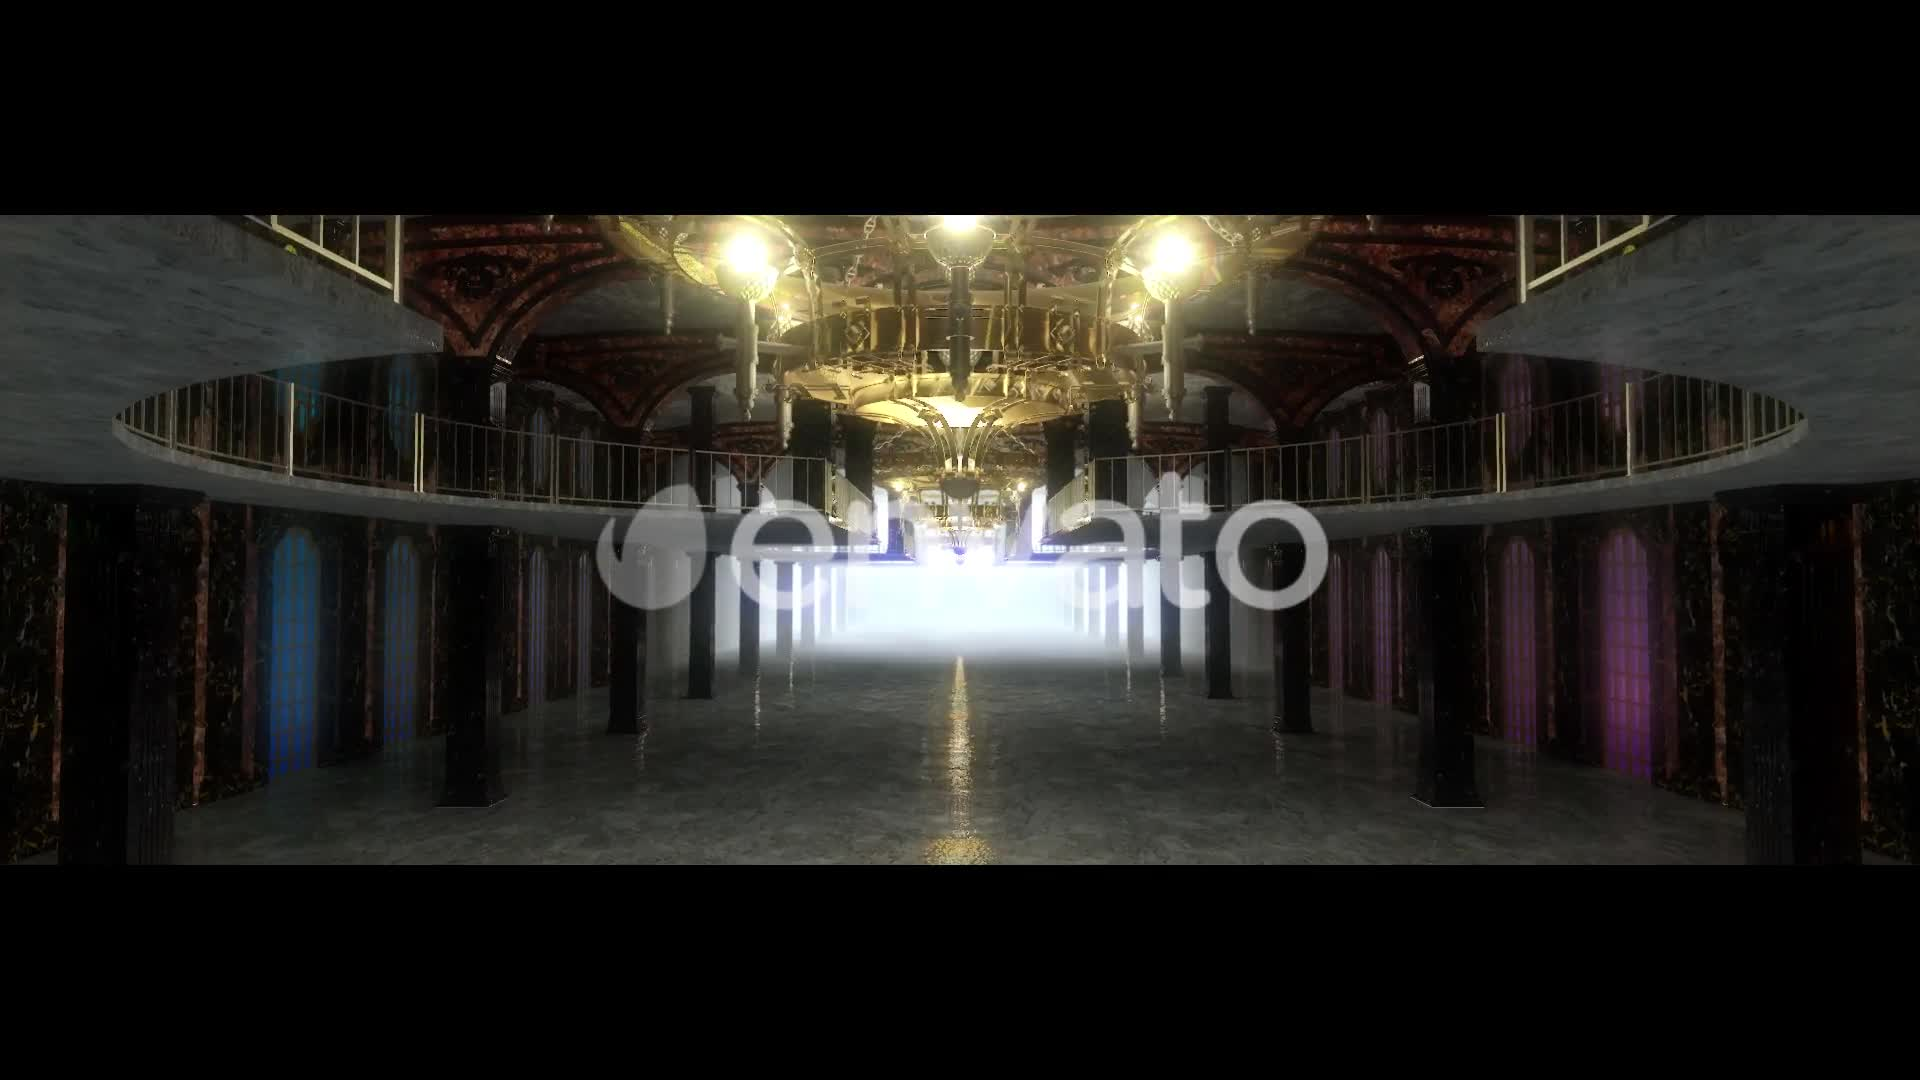 Castle Interior Videohive 22120312 Motion Graphics Image 1